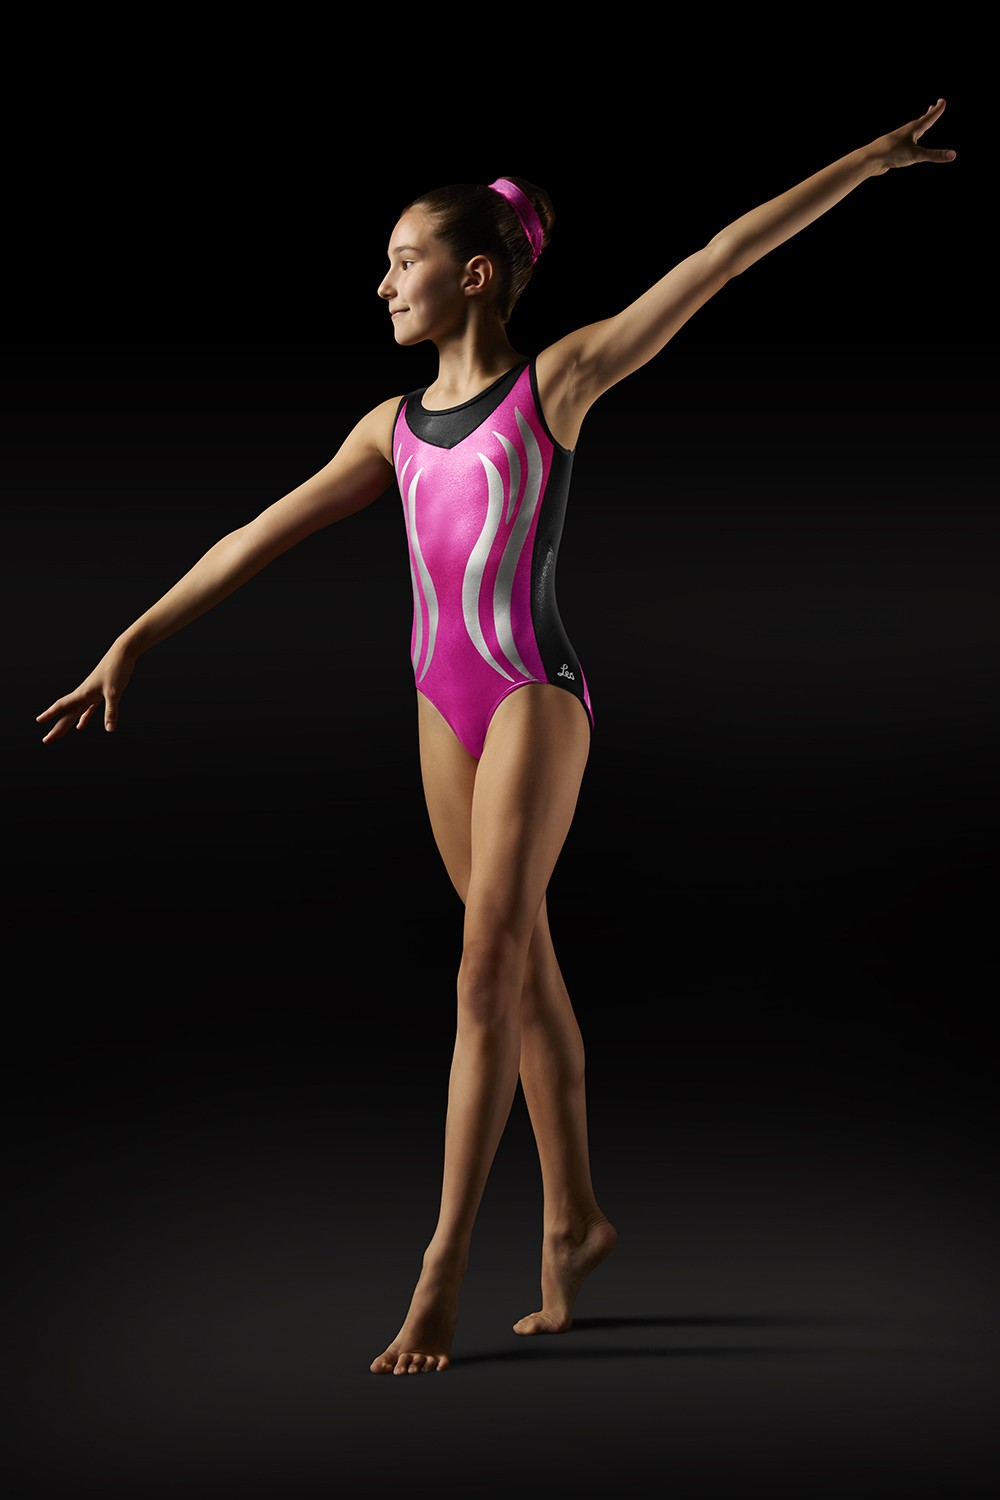 Body Con Spalline Larghe E Motivo A Fiamma Sul Davanti E Sul Retro Girl's Gymnastics Leotards